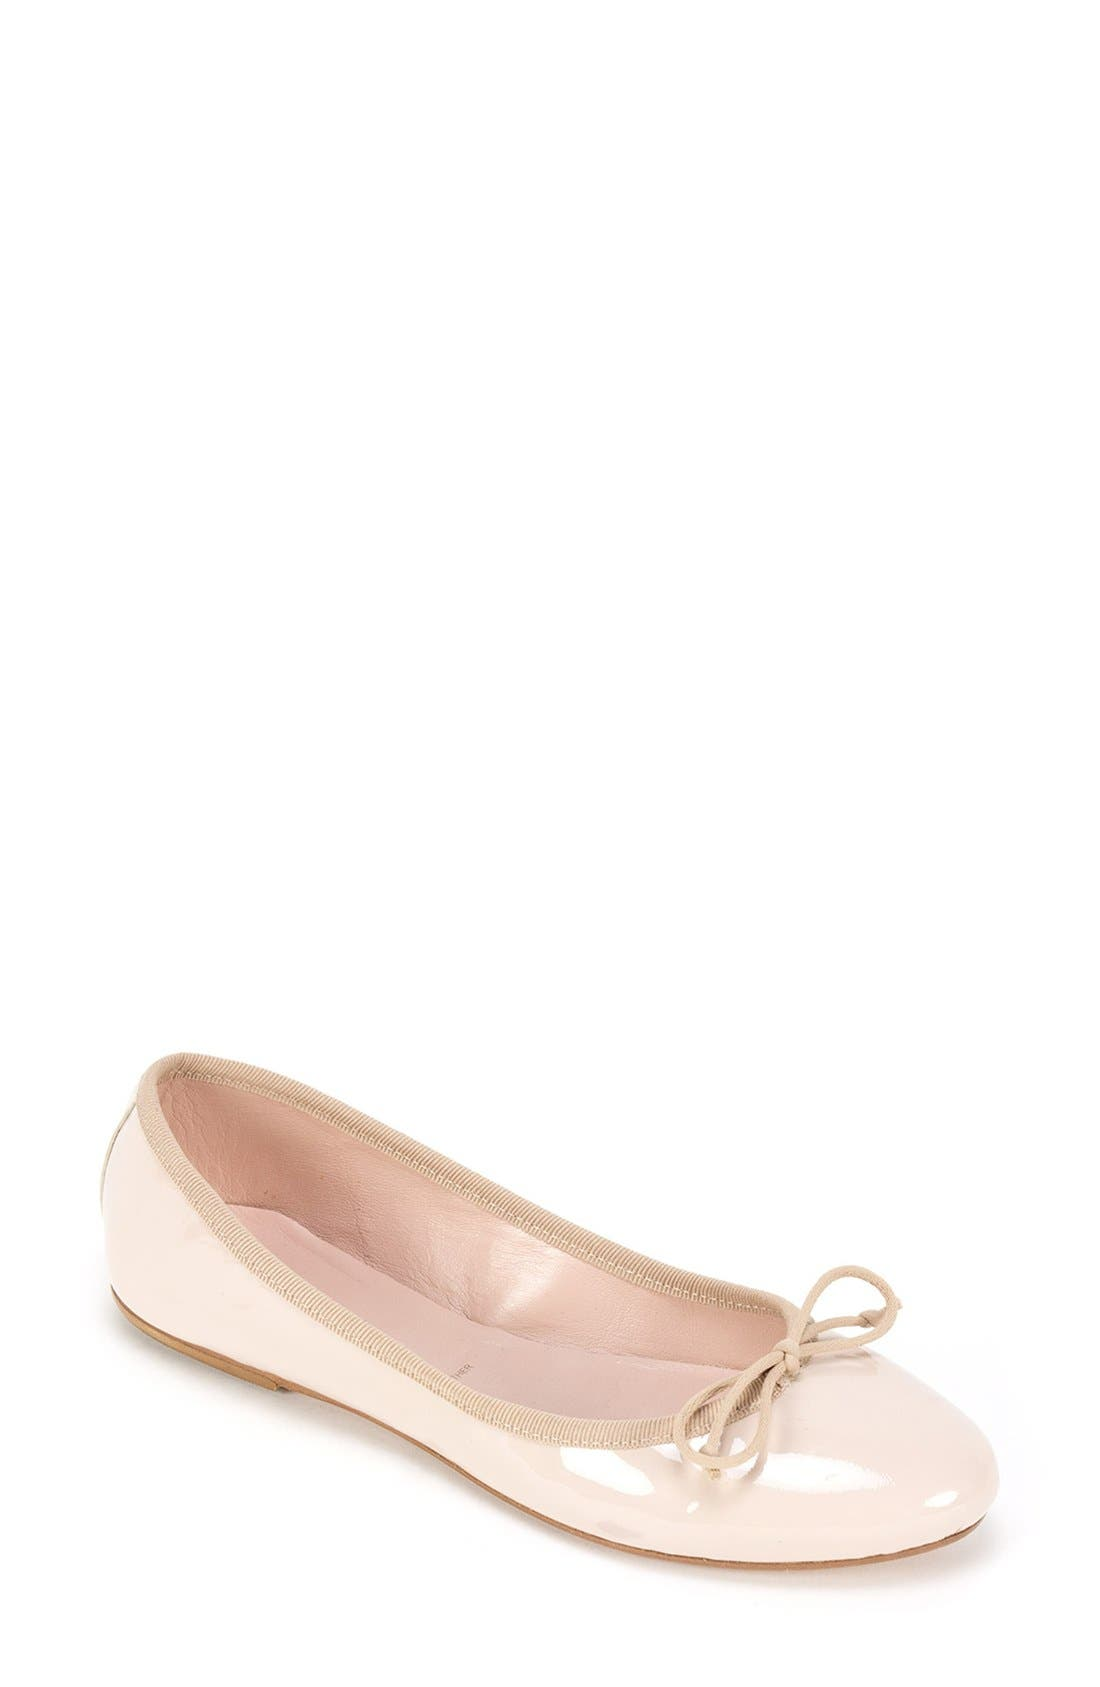 'Kendall' Ballet Flat,                             Main thumbnail 1, color,                             Nude Patent Leather